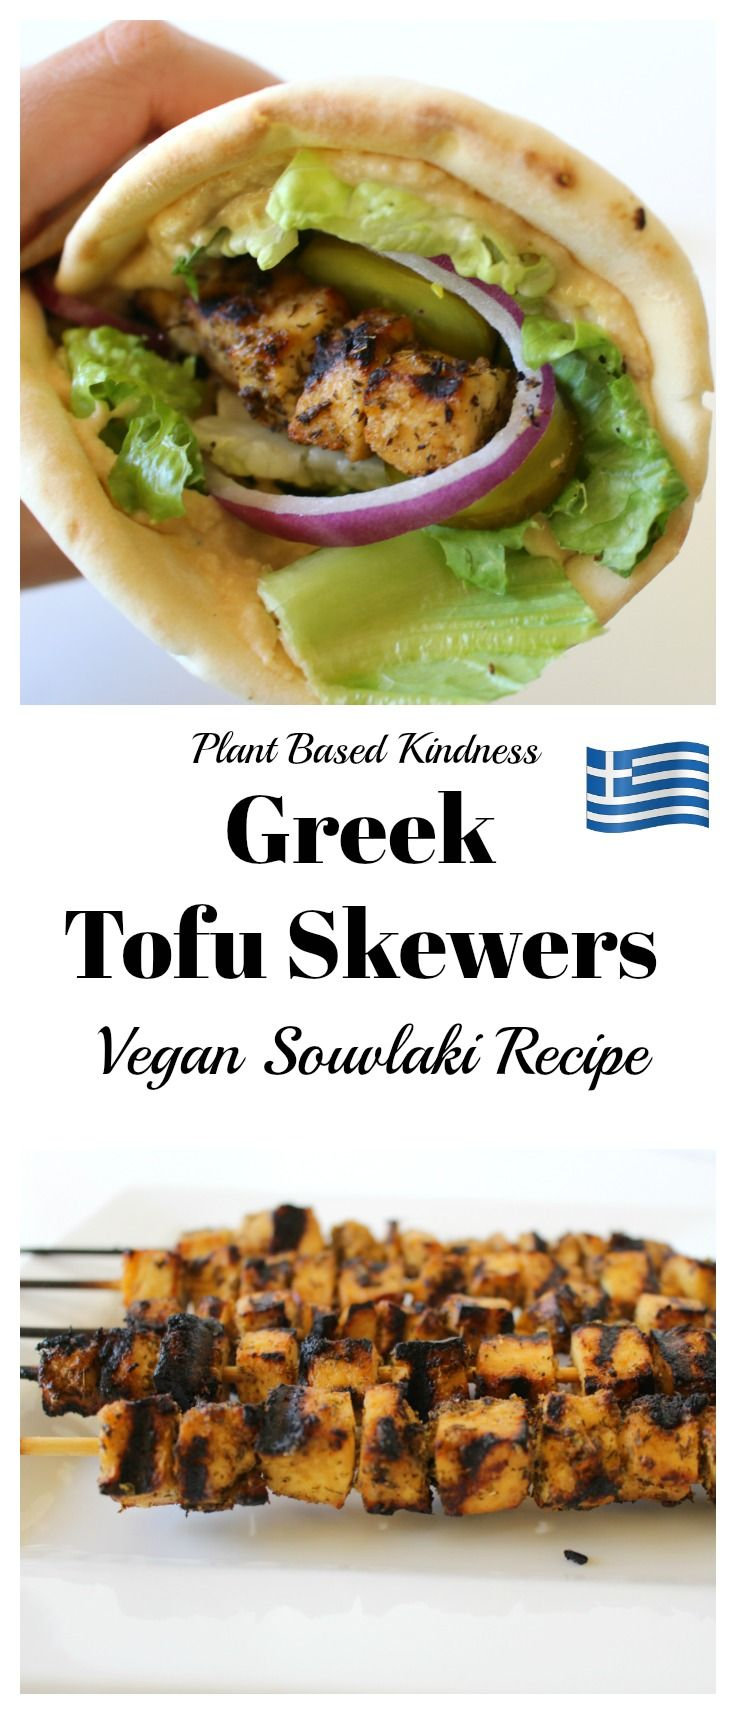 Greek inspired skewers for the BBQ! You can also bake the marinated tofu if you do not have a BBQ! If you do not have a BBQ or do not use it because it's not healthy, don't worry, you can bake the tofu! I tried it last night, and it becomes super crispy and has...Read More »